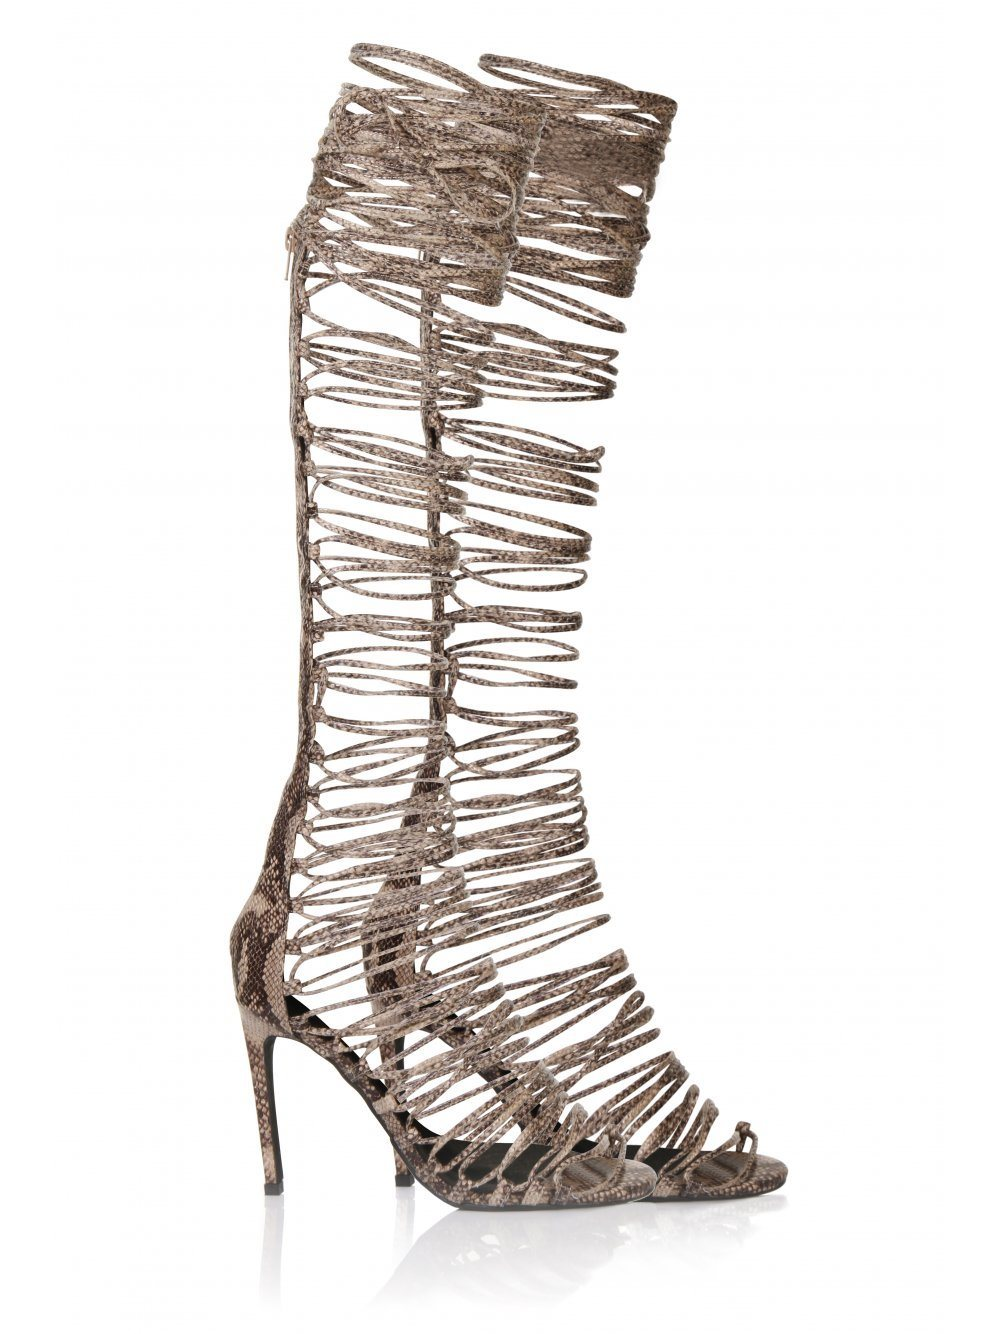 ADVENT Snakeskin Leather Lace Up Sandals